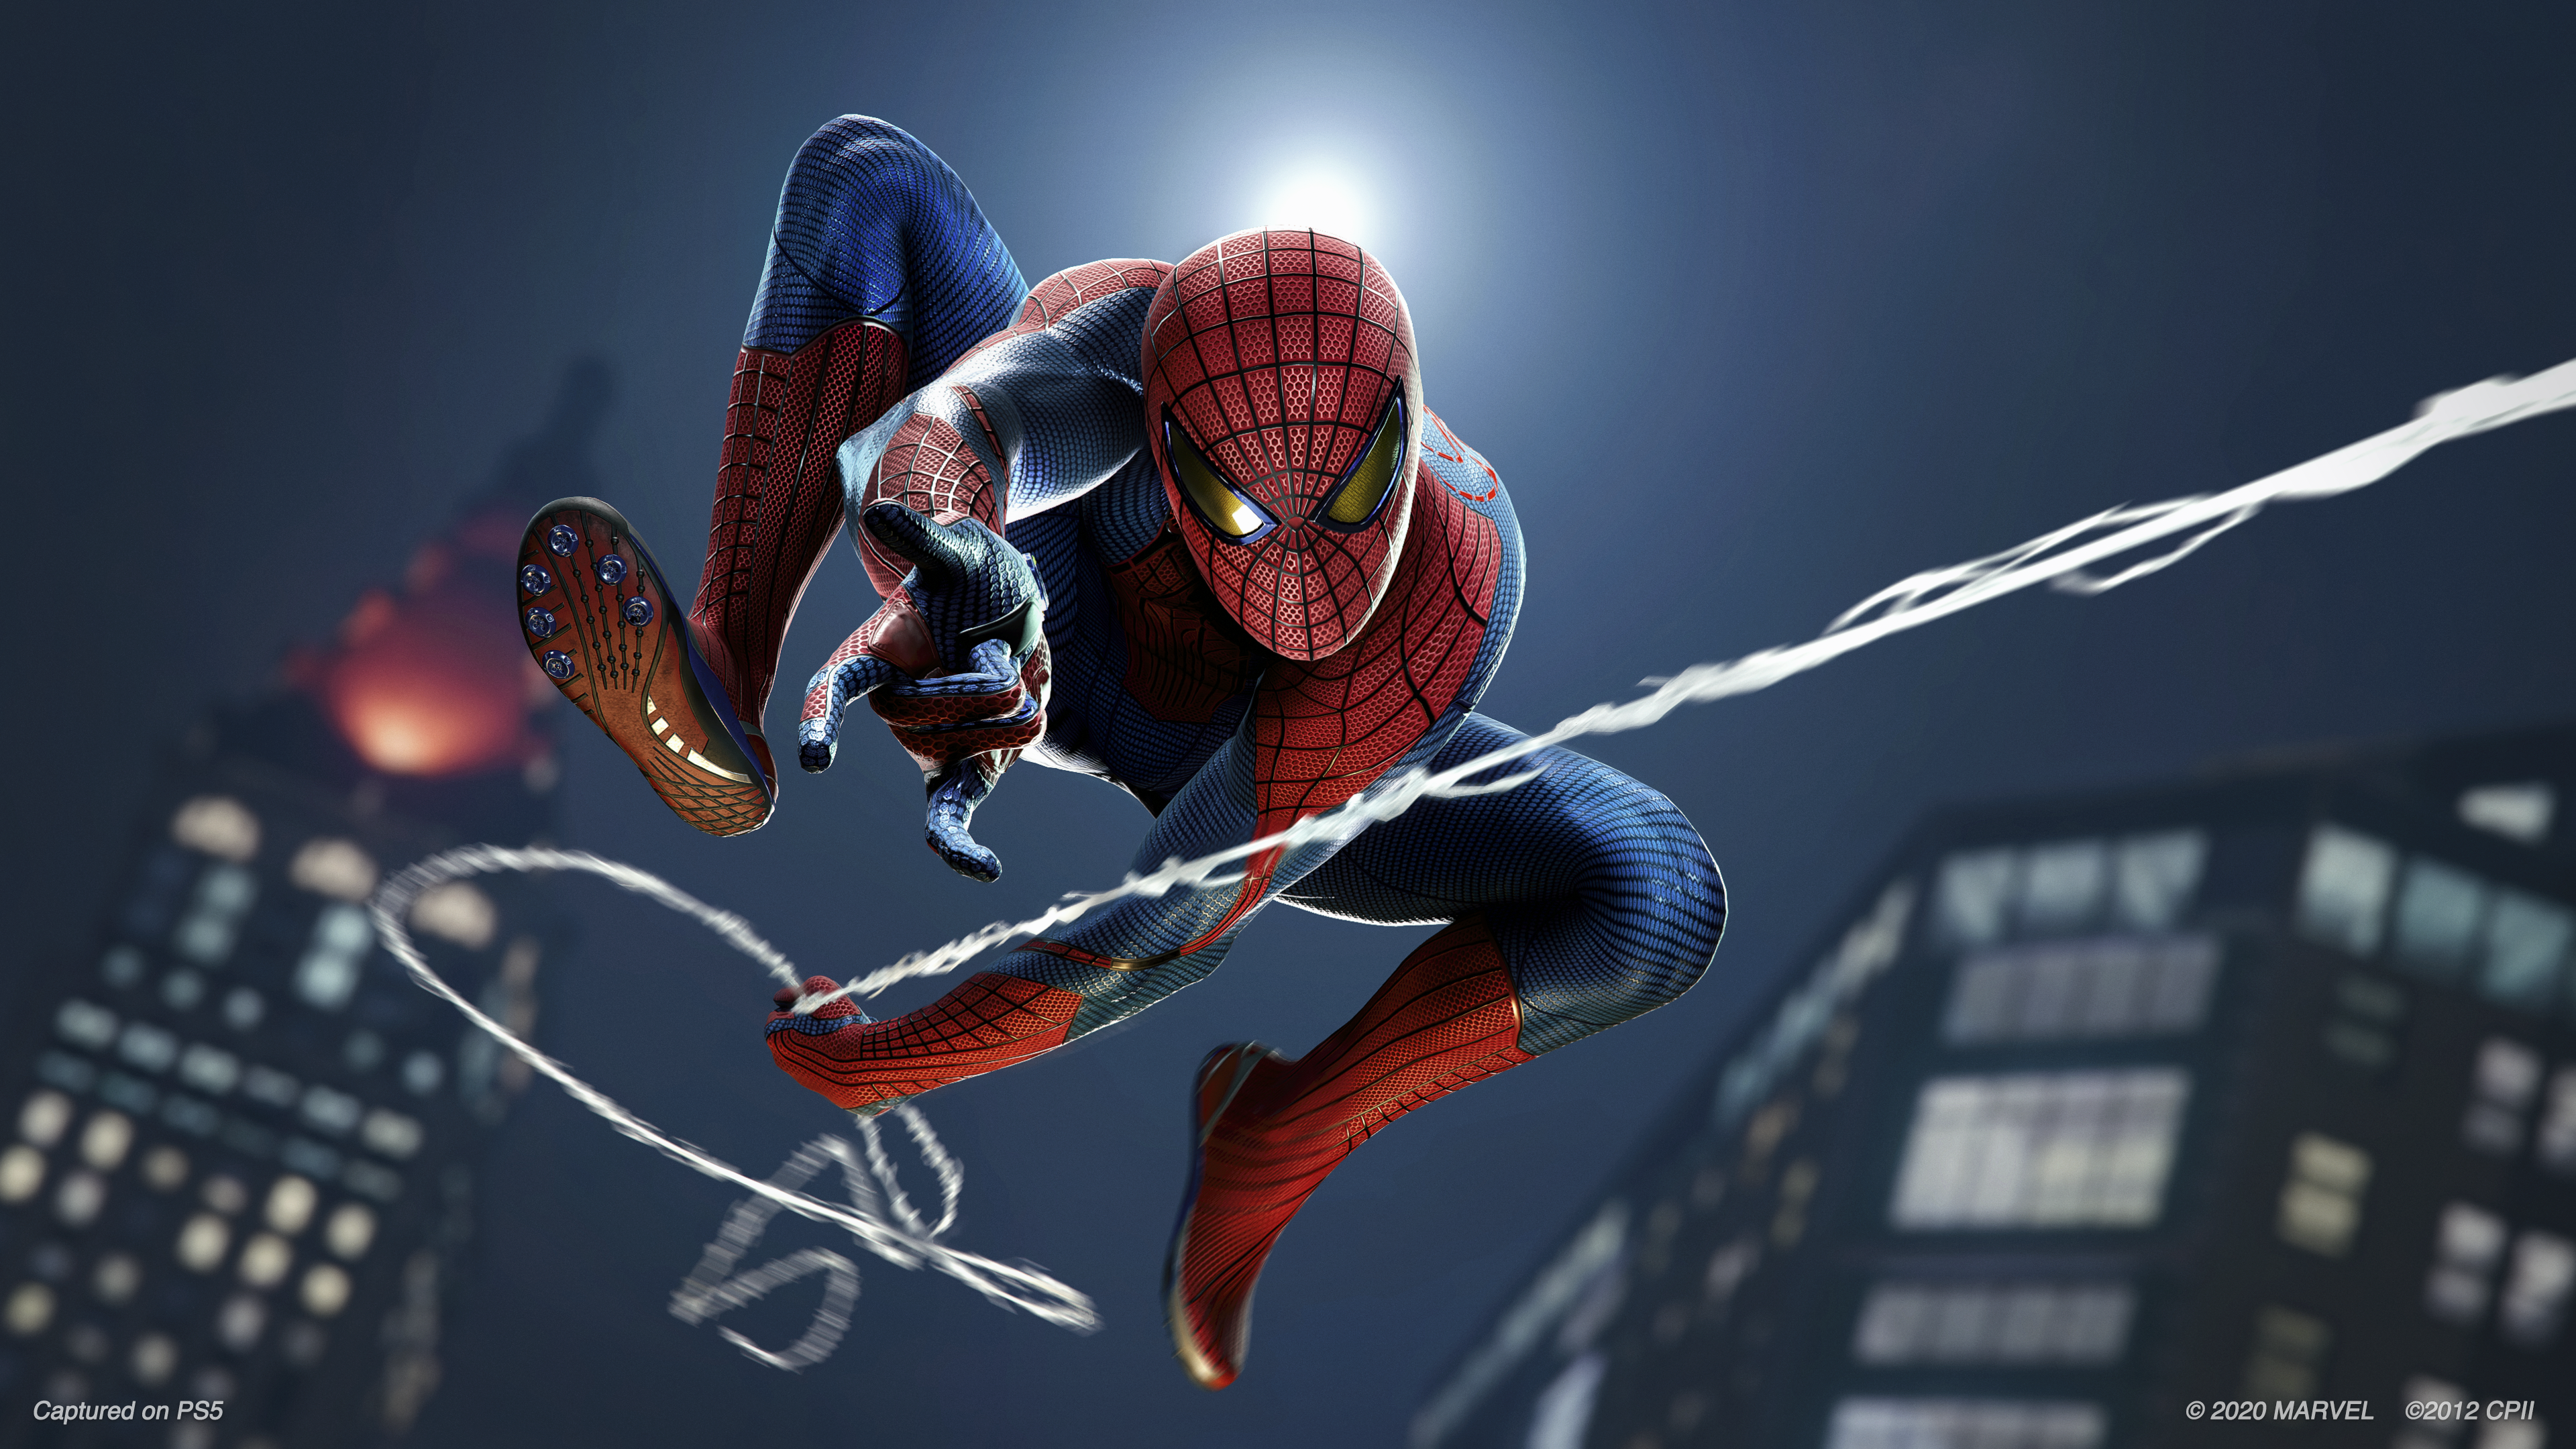 marvel's Spider-Man remastered; captura de pantalla